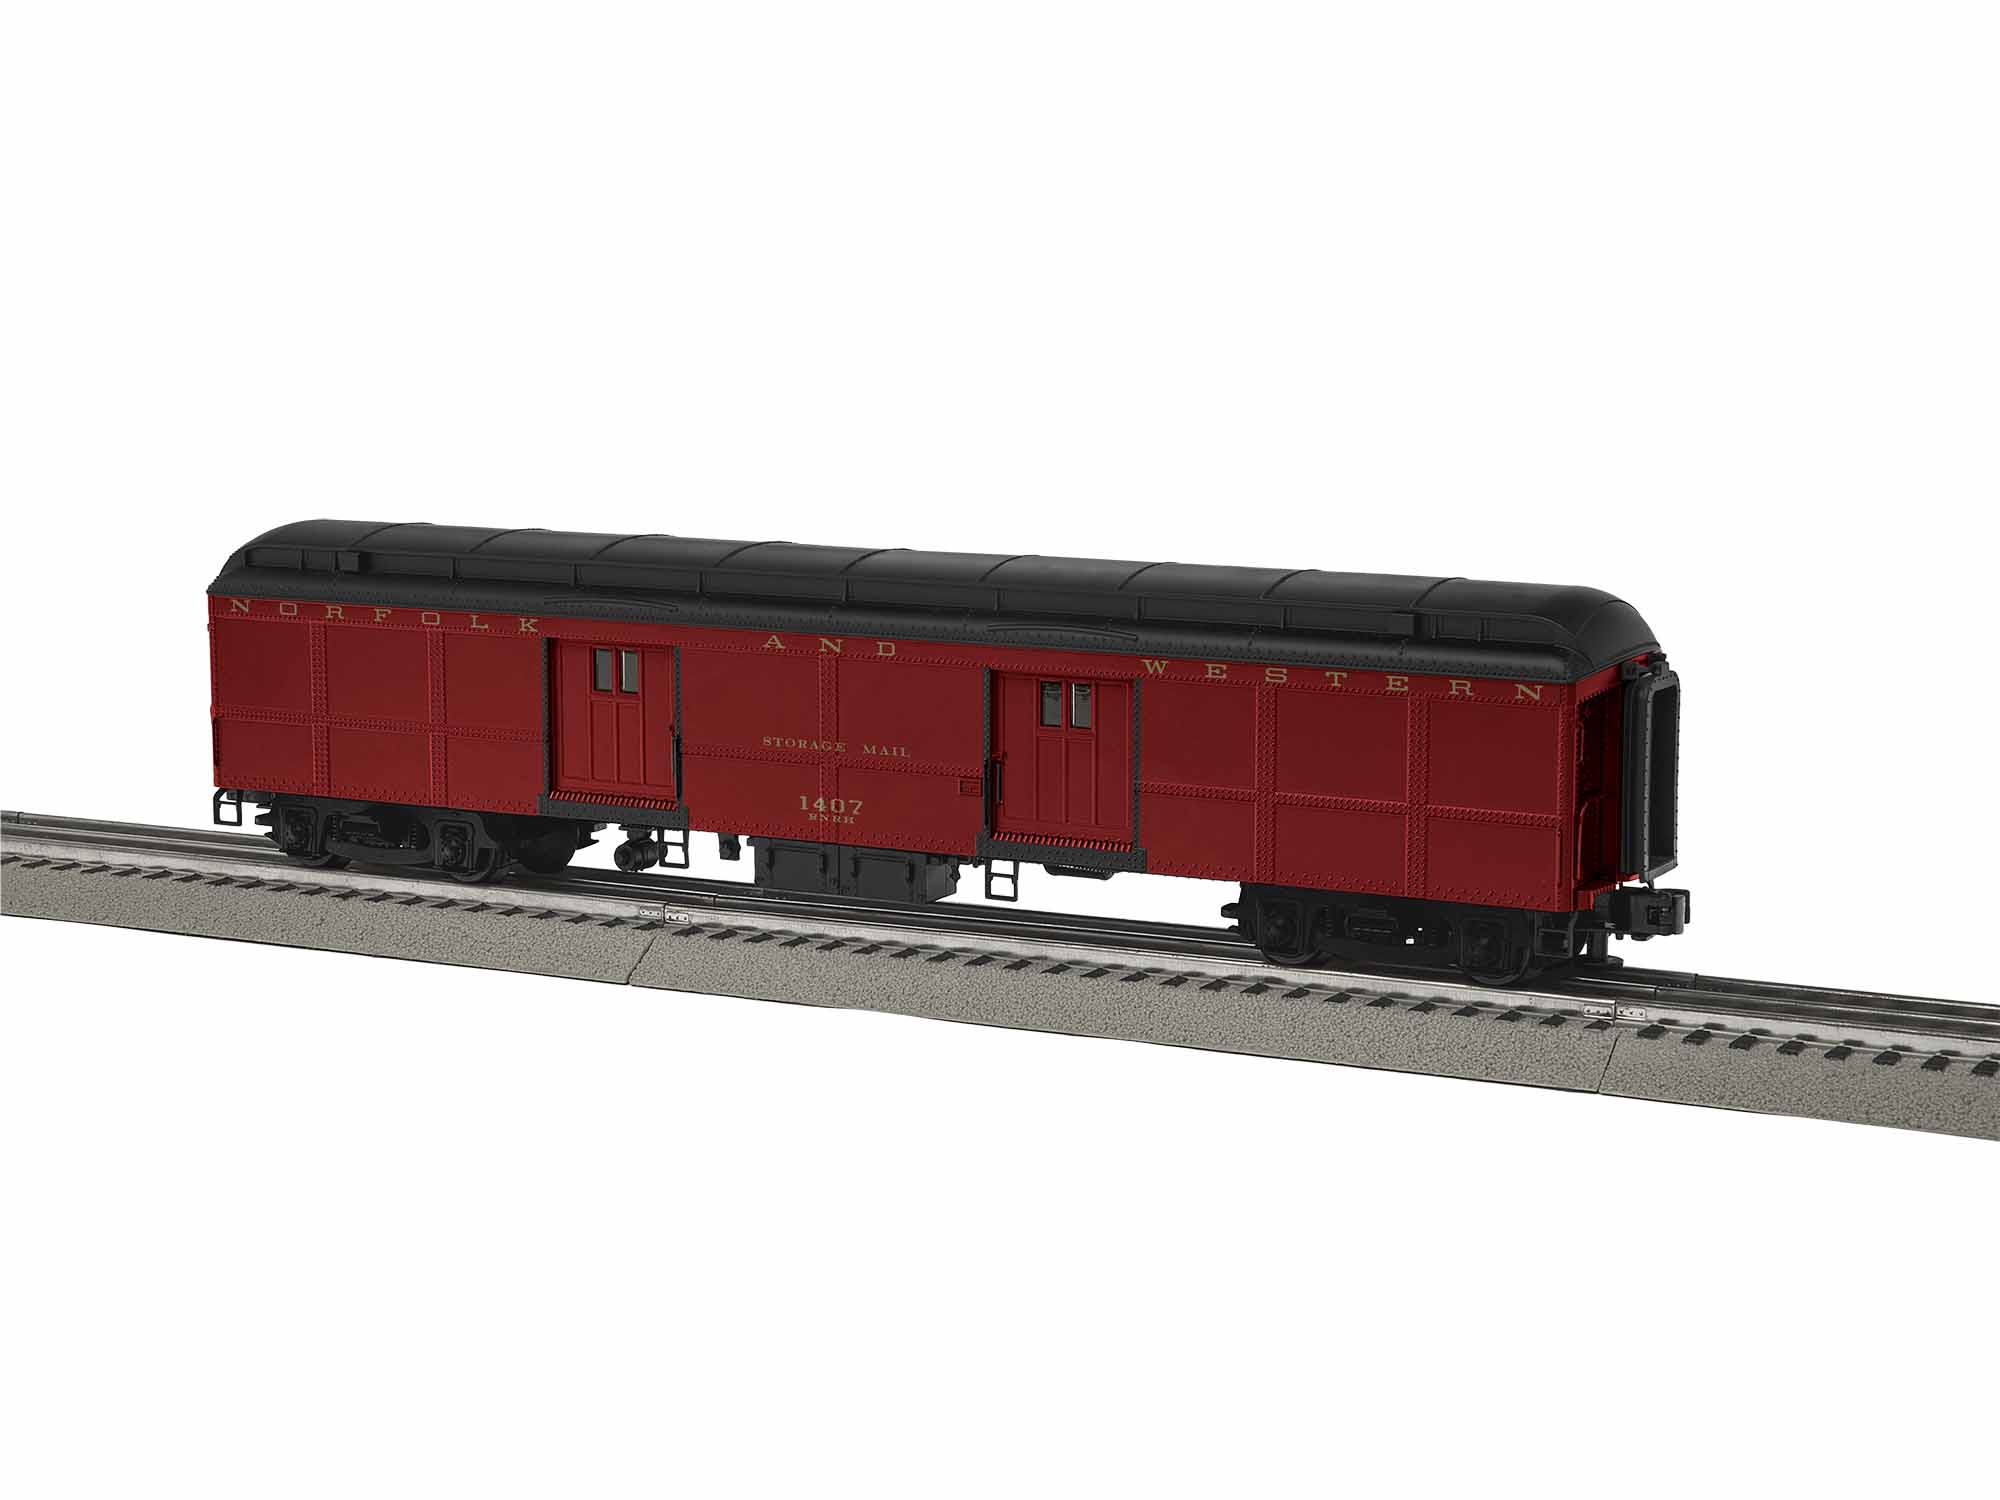 Lionel 1927241 O 611 Excursion Train Tool Car N&W